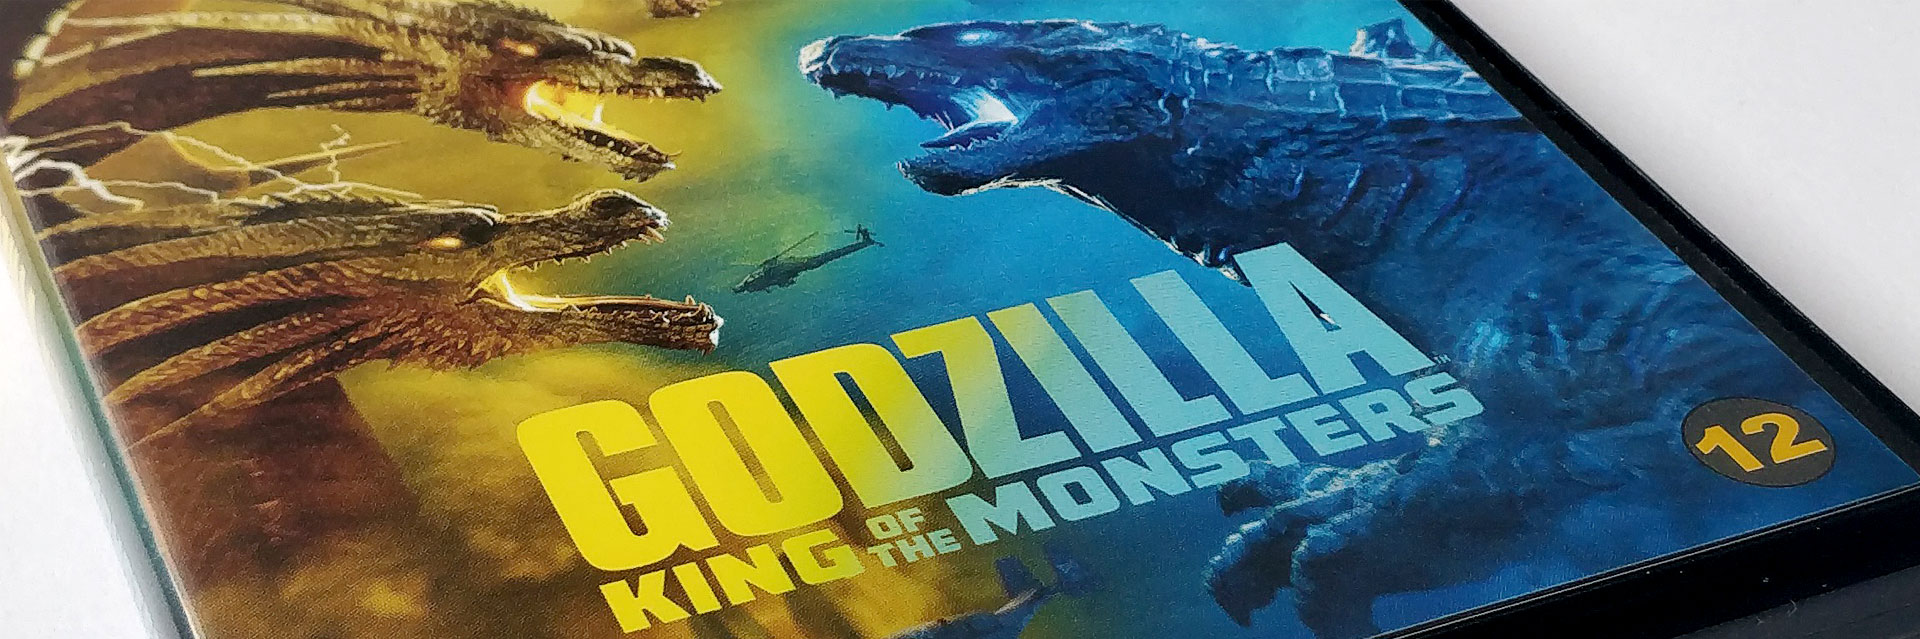 Godzilla: King of the Monsters (2019) 4K Ultra HD Blu-ray -arvostelu